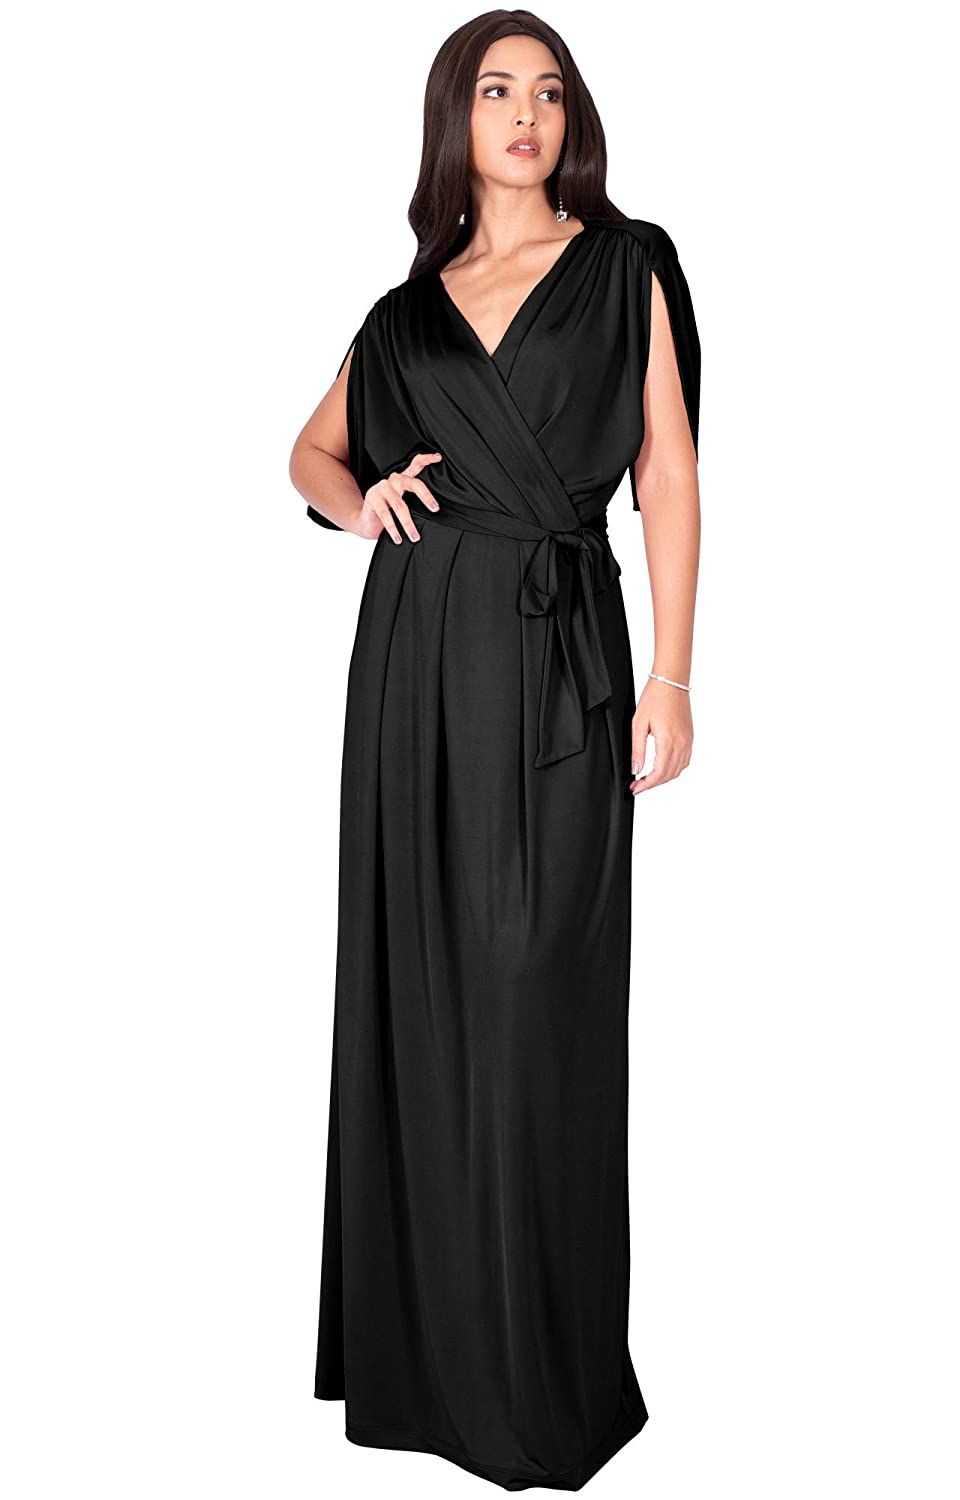 0807c501d4bd0 KOH KOH Womens Long Semi-Formal Short Sleeve V-Neck Floor Length Maxi Dress  Gown at Amazon Women s Clothing store